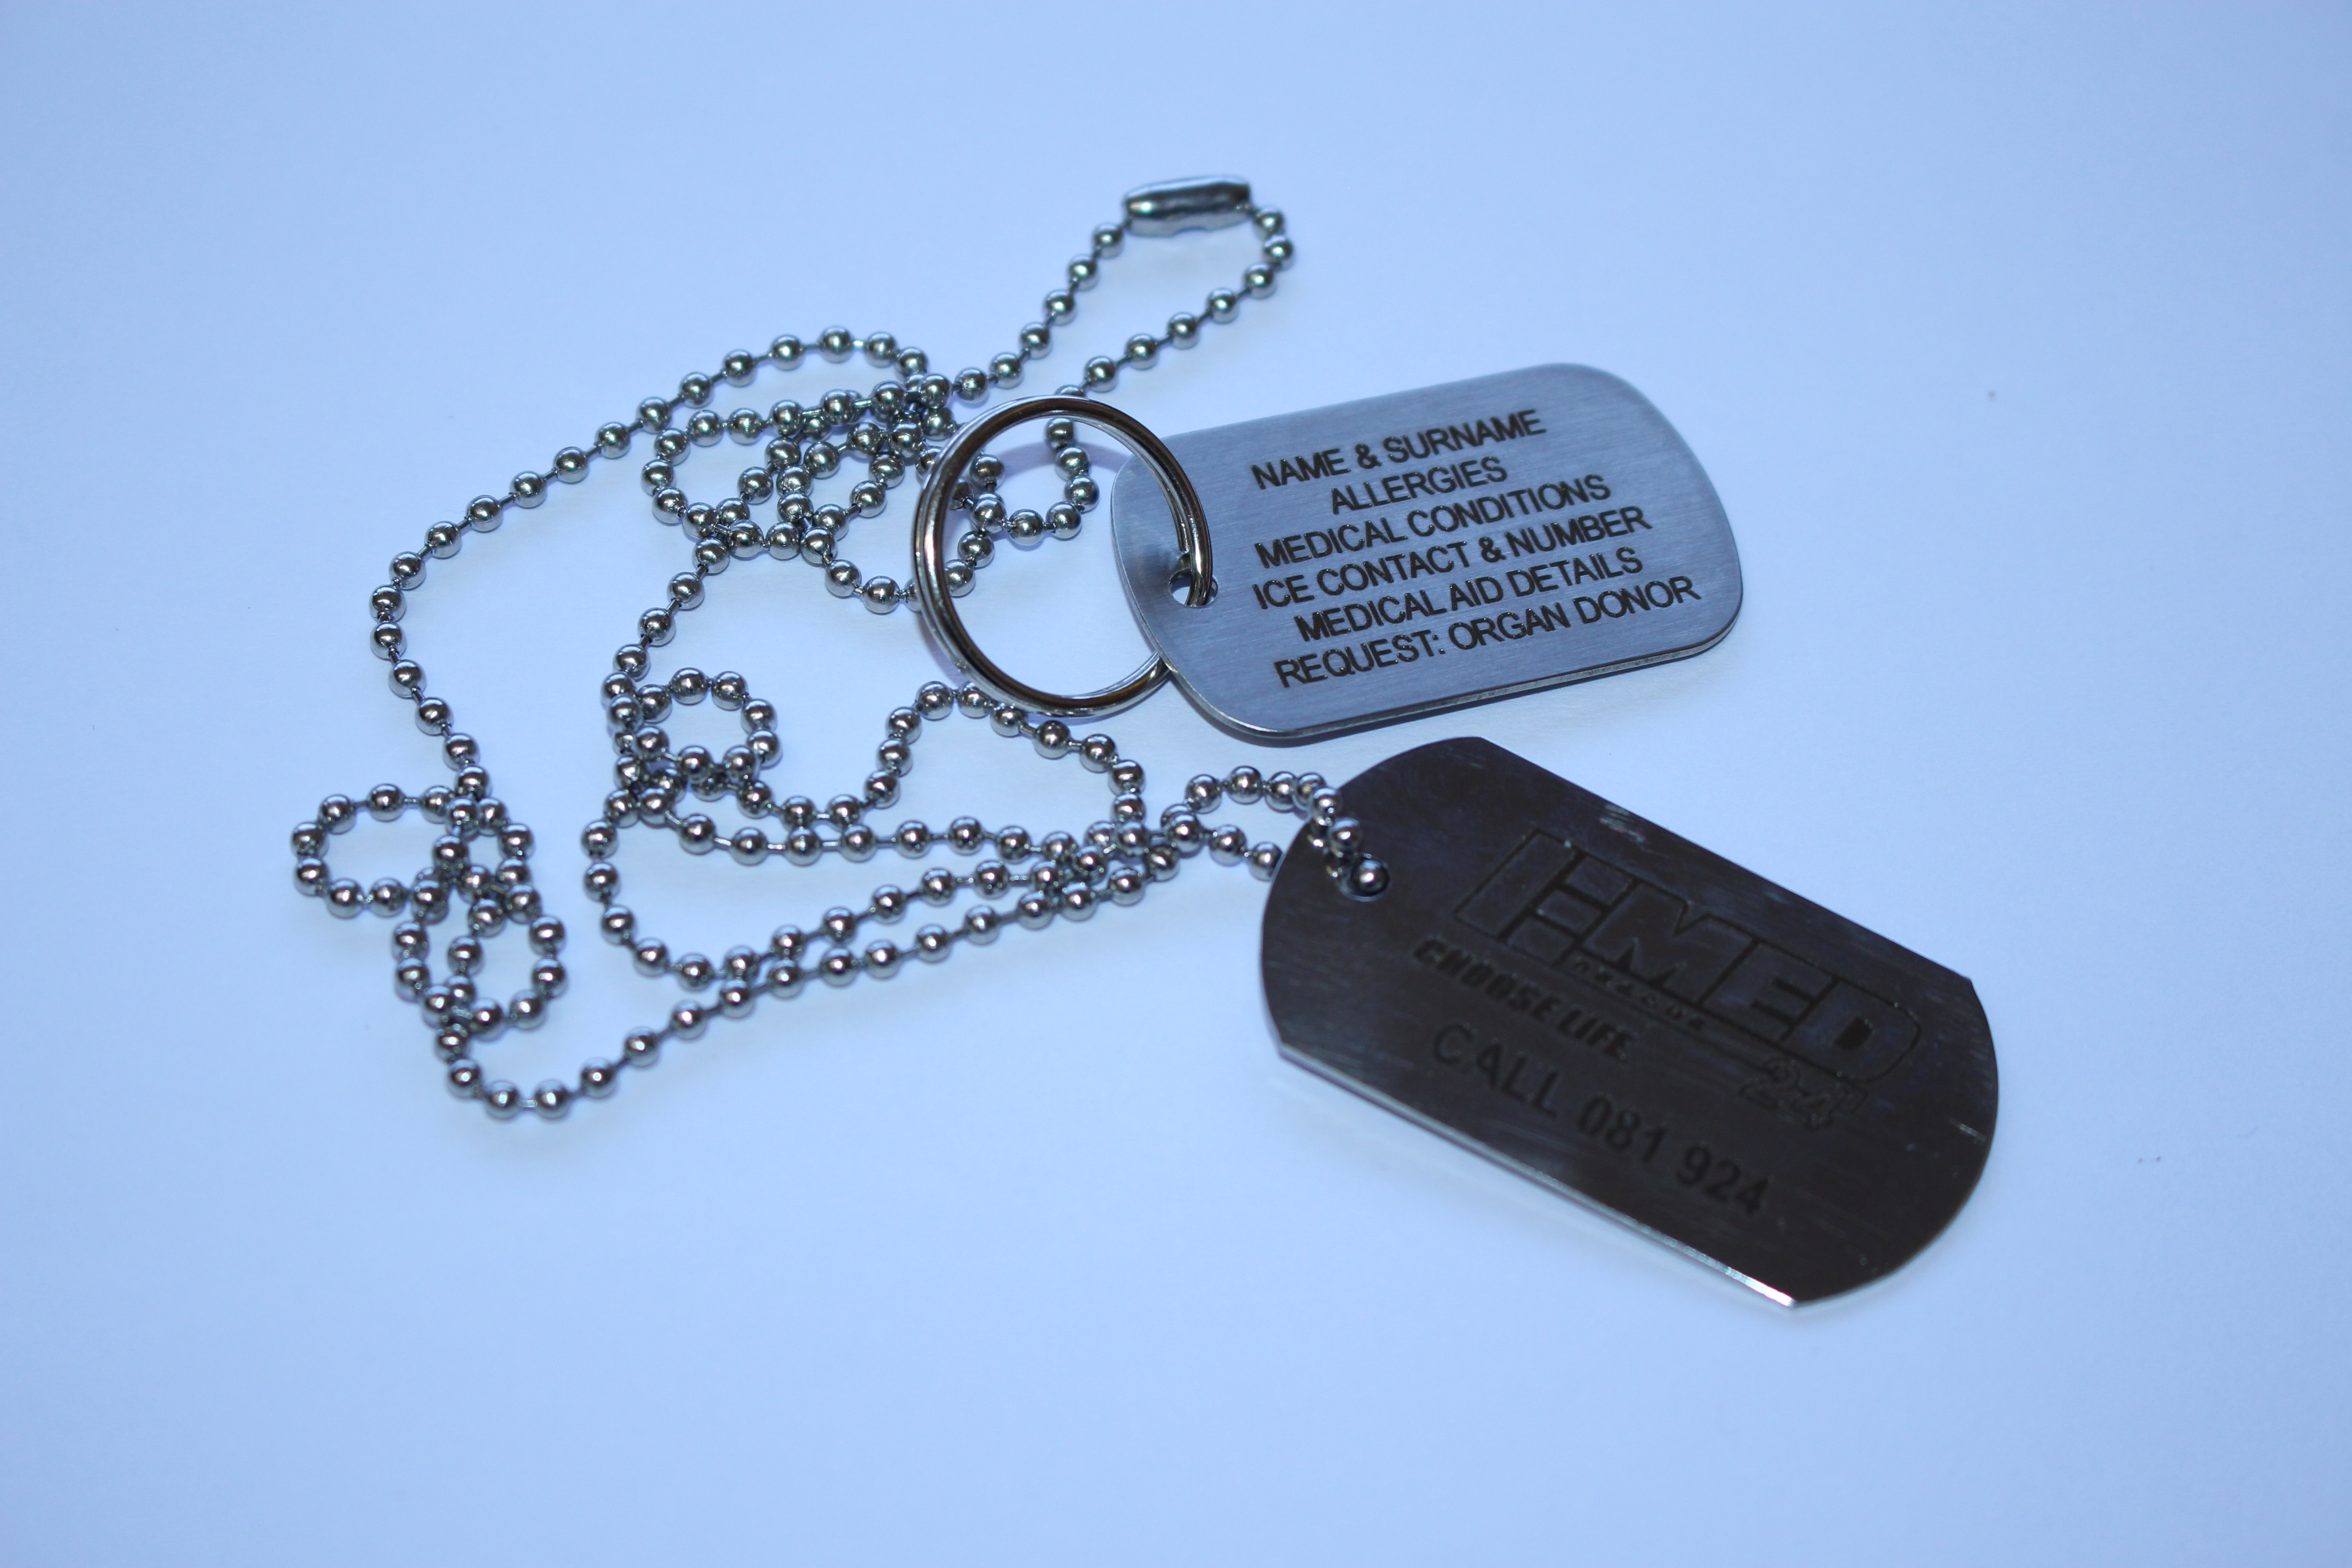 DOG TAG/KEY RING Polished/Brushed, Stainless Steel Grade 316 plate with a ball chain of 70cm in length. - Available in Medium and Large. - Large: Additional cost of N$ 10.00